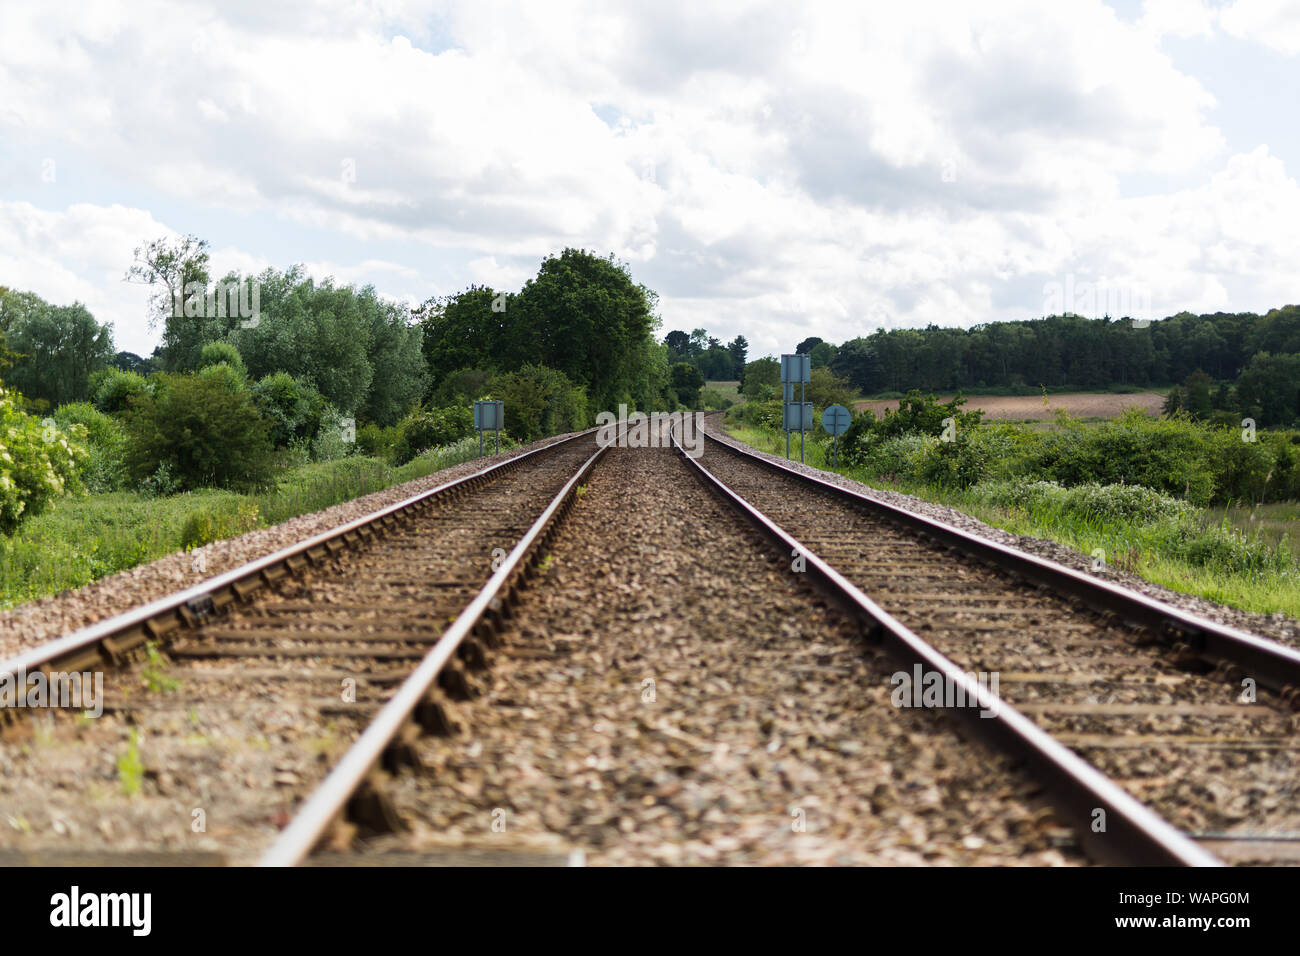 An empty train track, there are 2 tracks leading to a point on the horizon in rural countryside Stock Photo